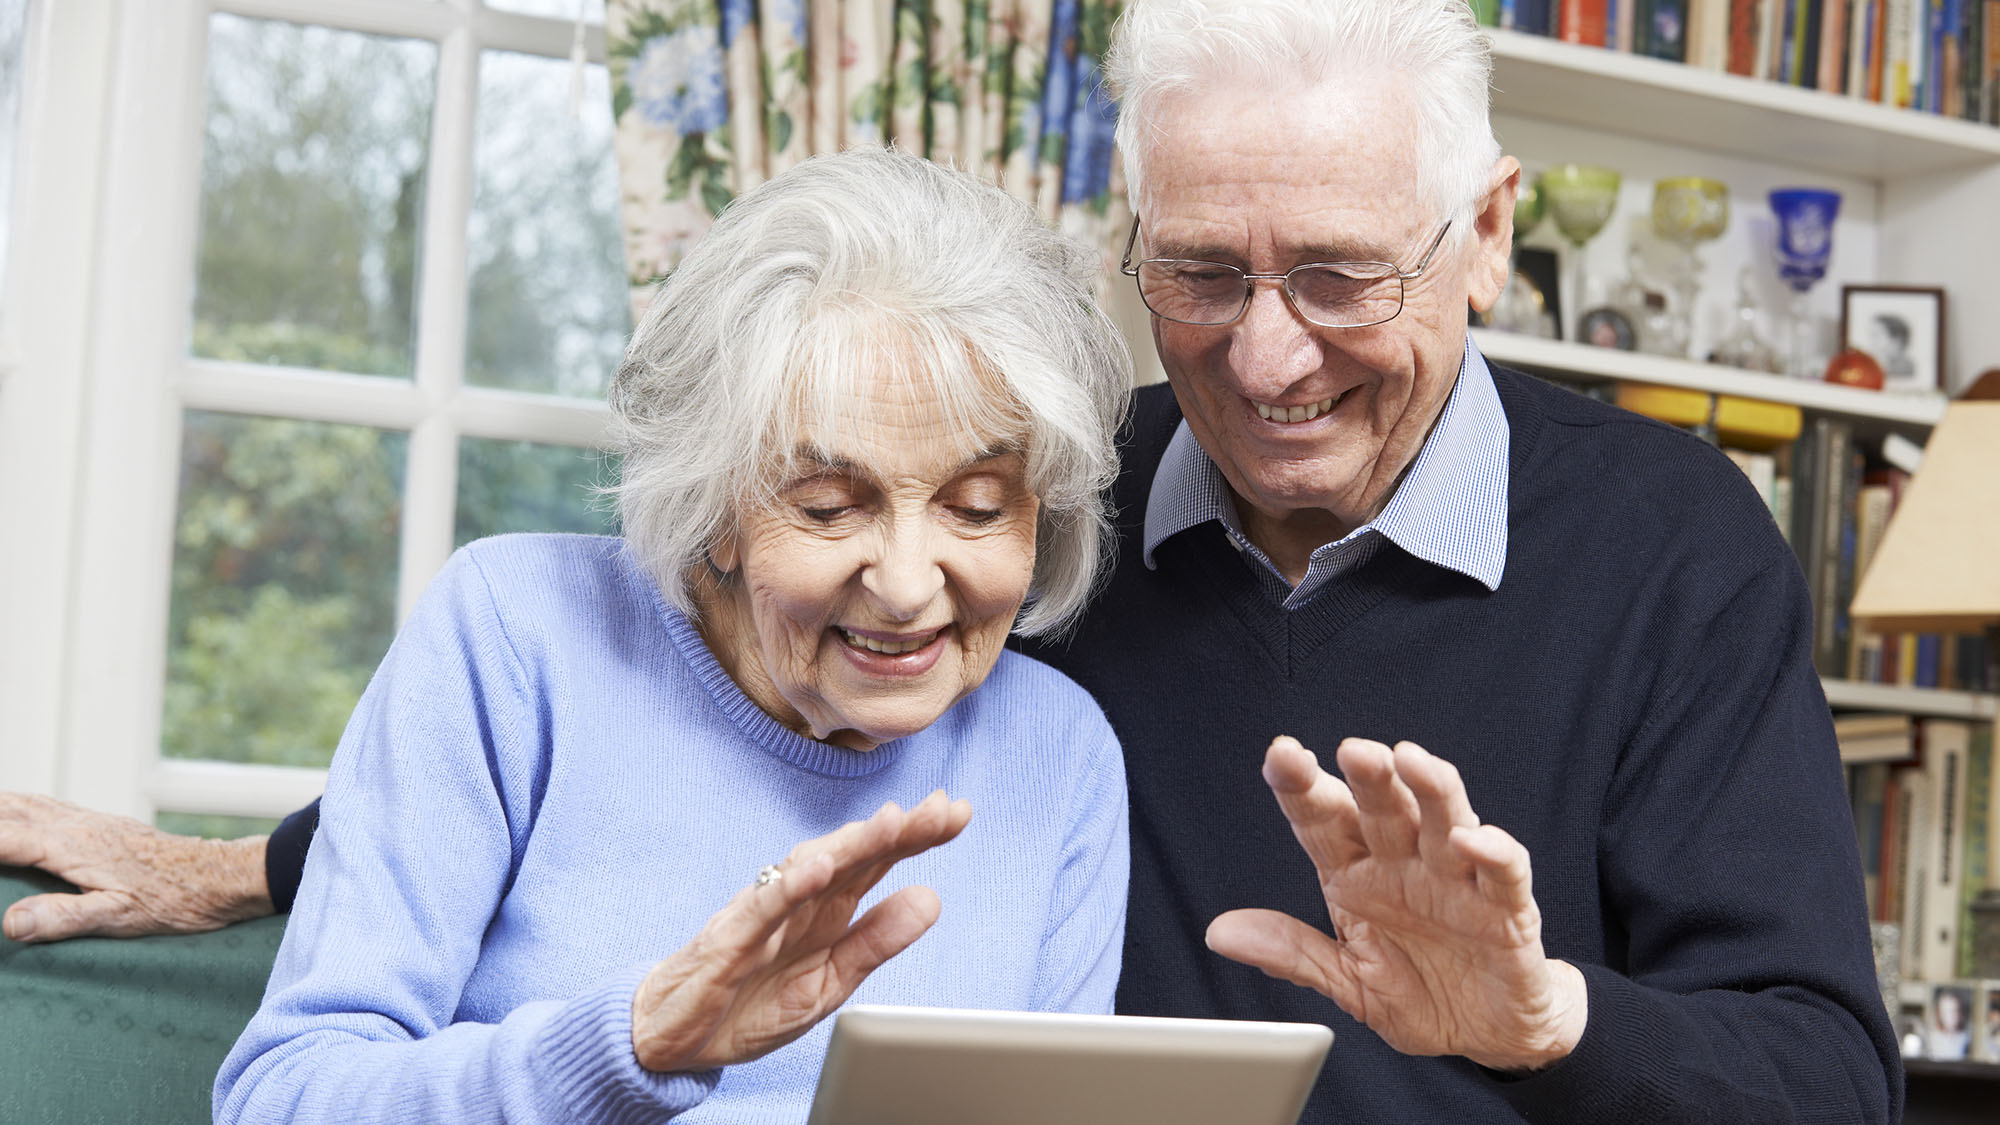 60's Plus Seniors Online Dating Site Without Payments